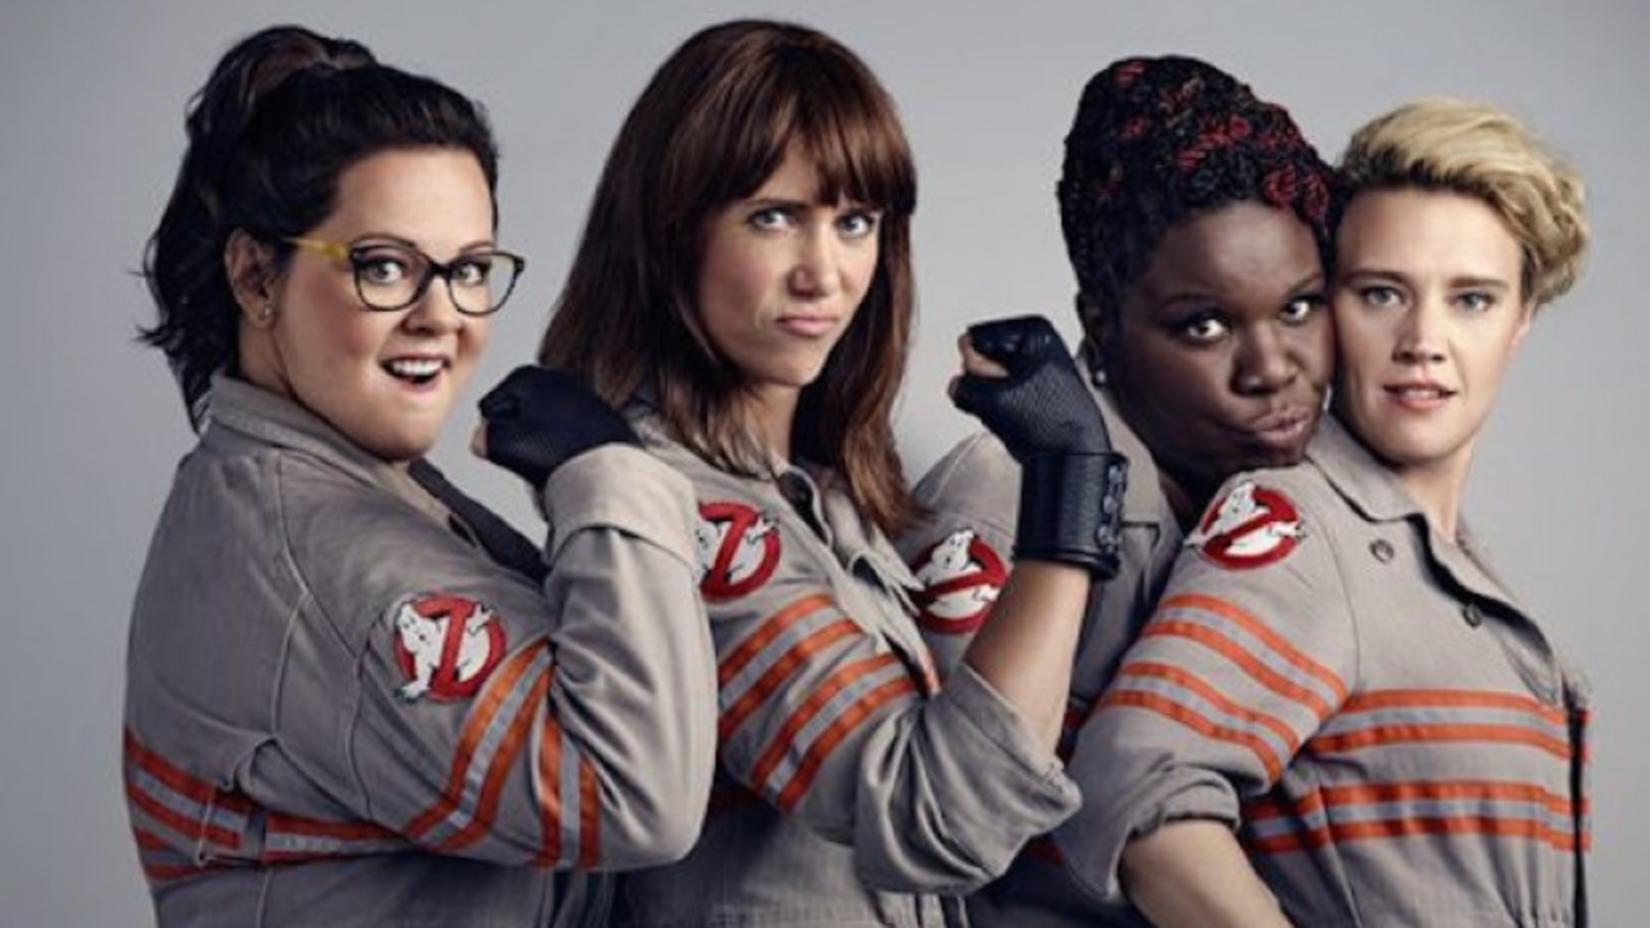 Director Regrets How His 2016 Ghostbusters Reboot Panned Out